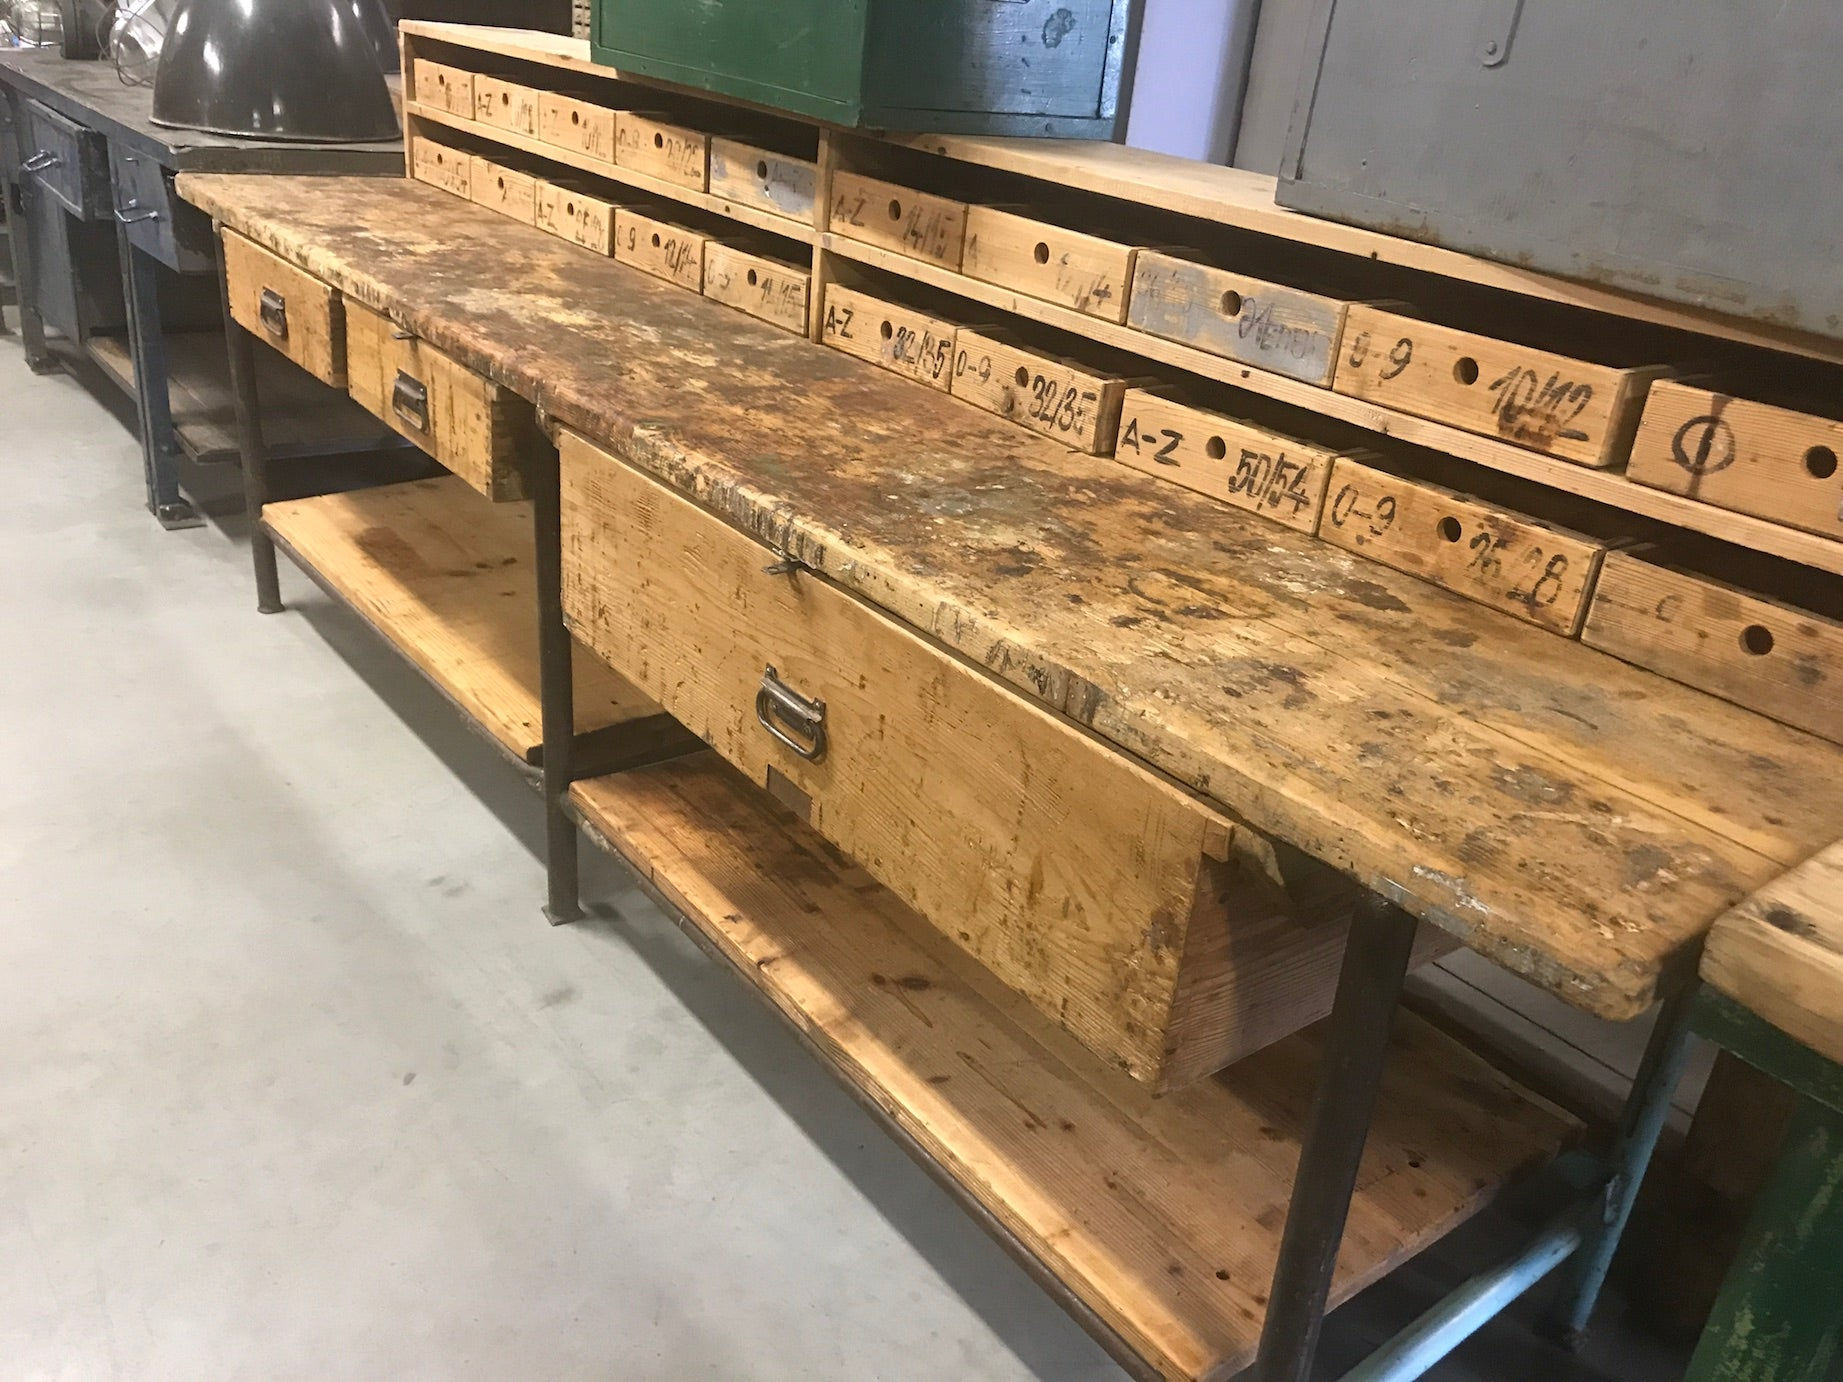 Vintage industrial European workbench table counter  kitchen island 3.0mt #2356 Nov container